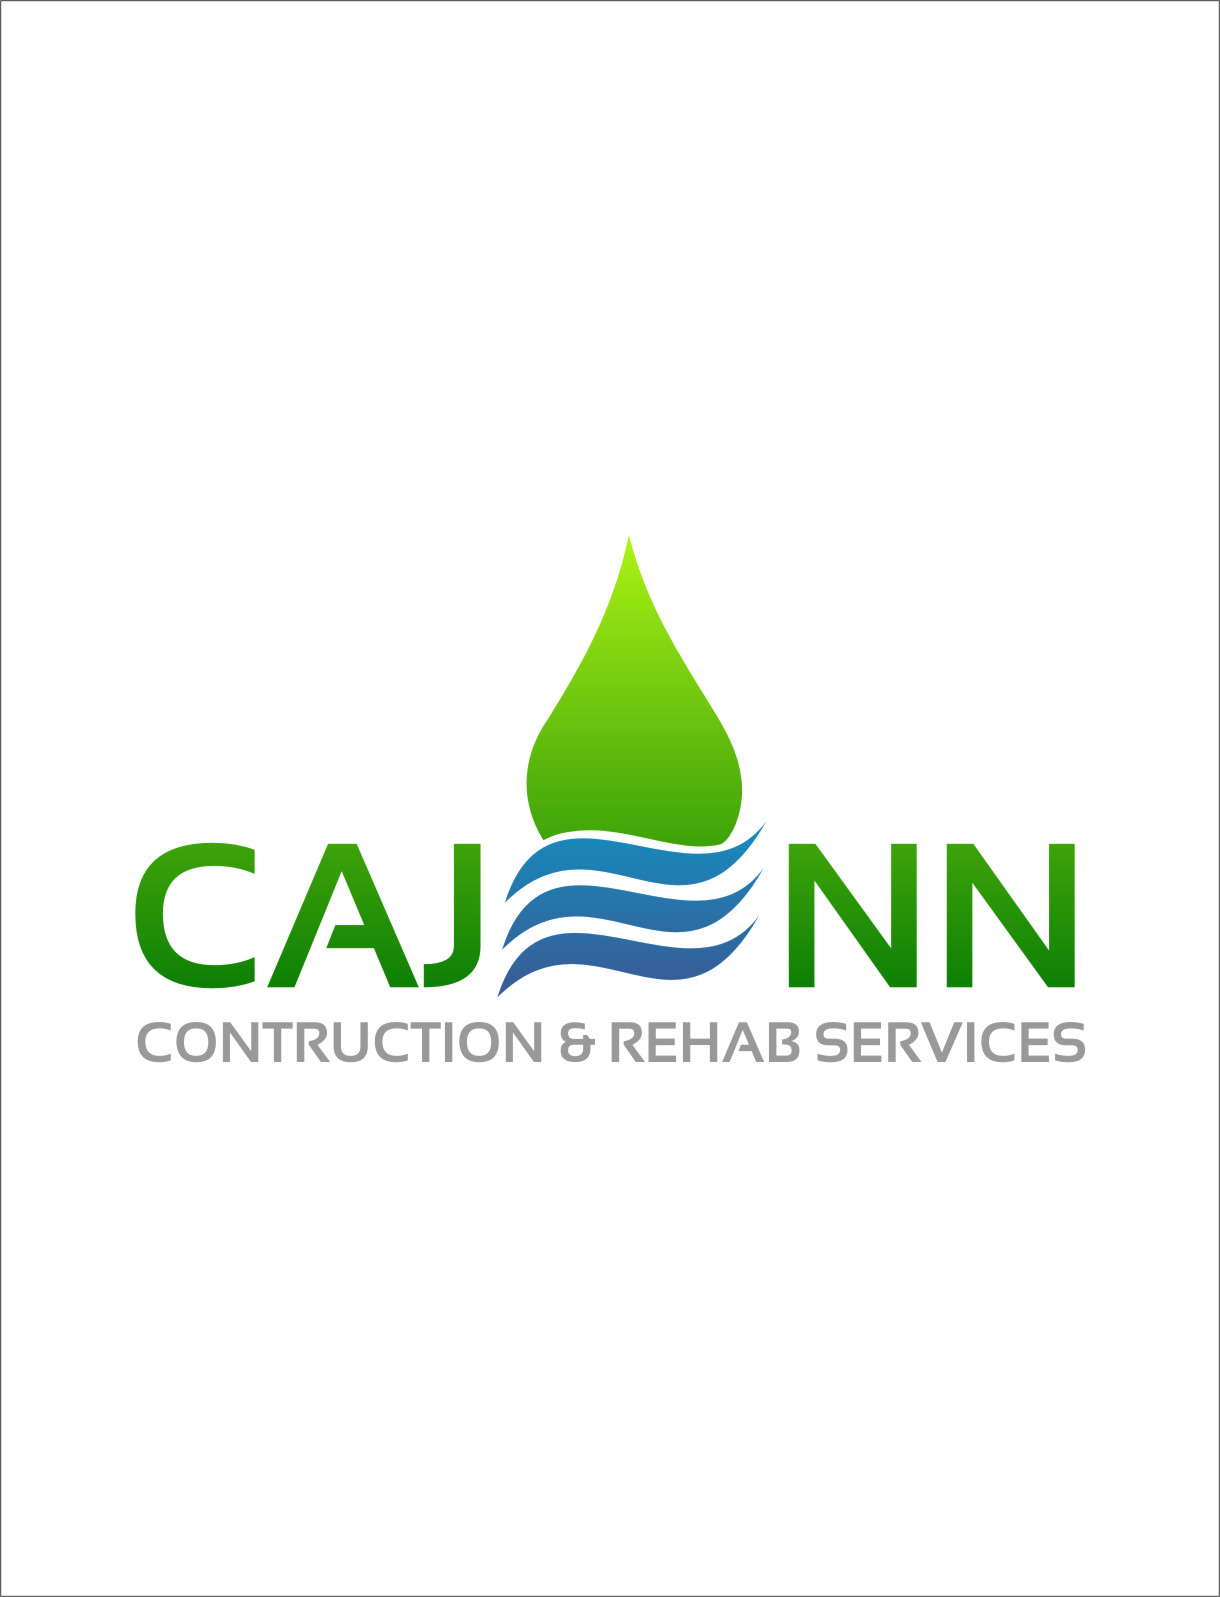 Logo Design by RasYa Muhammad Athaya - Entry No. 8 in the Logo Design Contest New Logo Design for CaJenn Construction & Rehab Services.